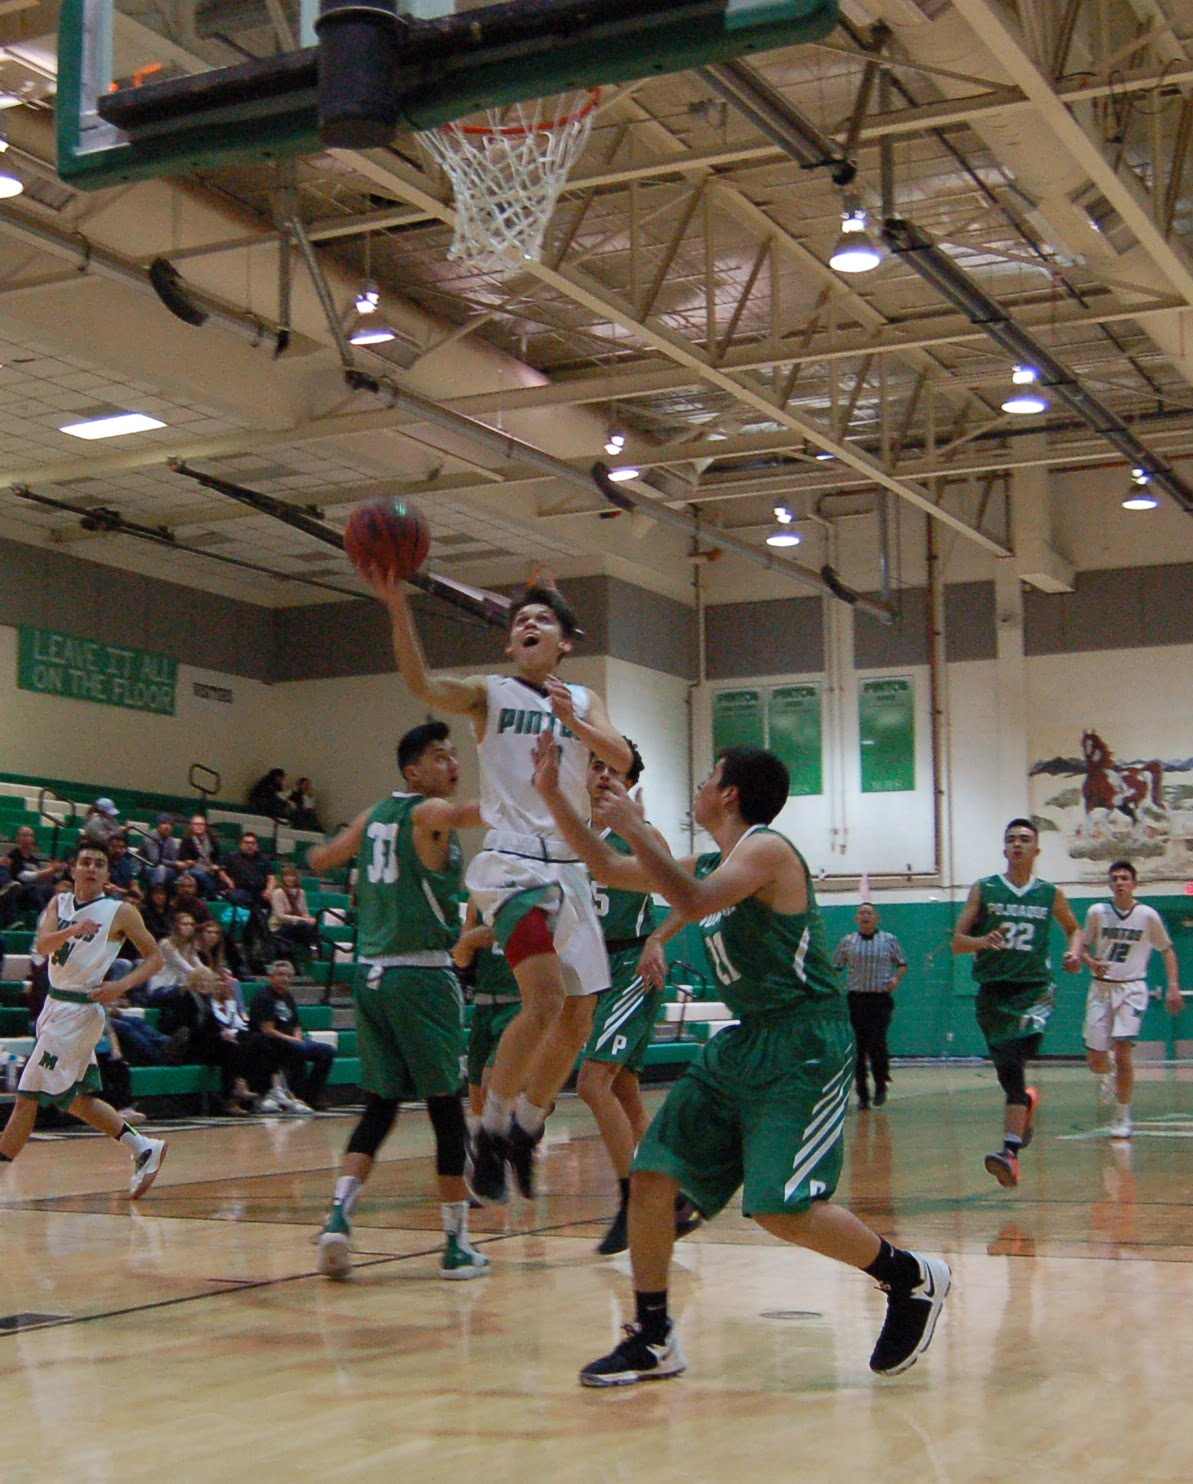 Pintos challenging hoops season ends with a string of losses